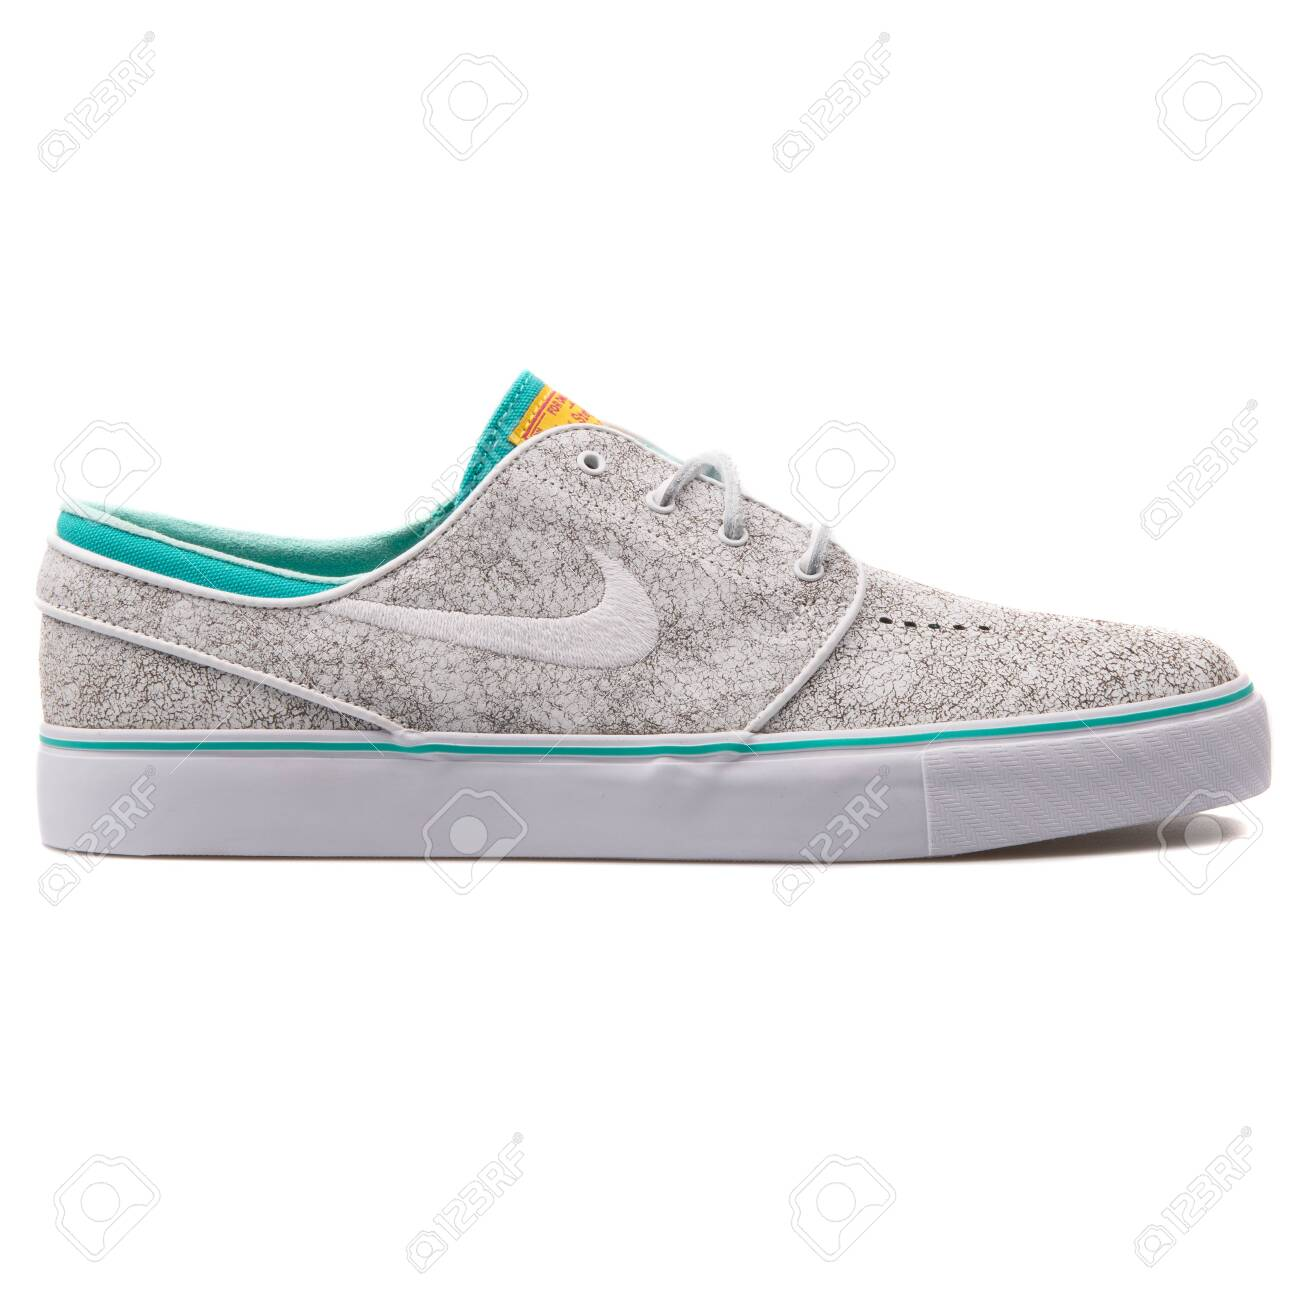 distorsionar mensaje flexible  VIENNA, AUSTRIA - AUGUST 25, 2017: Nike Zoom Stefan Janoski Elite.. Stock  Photo, Picture And Royalty Free Image. Image 127889946.